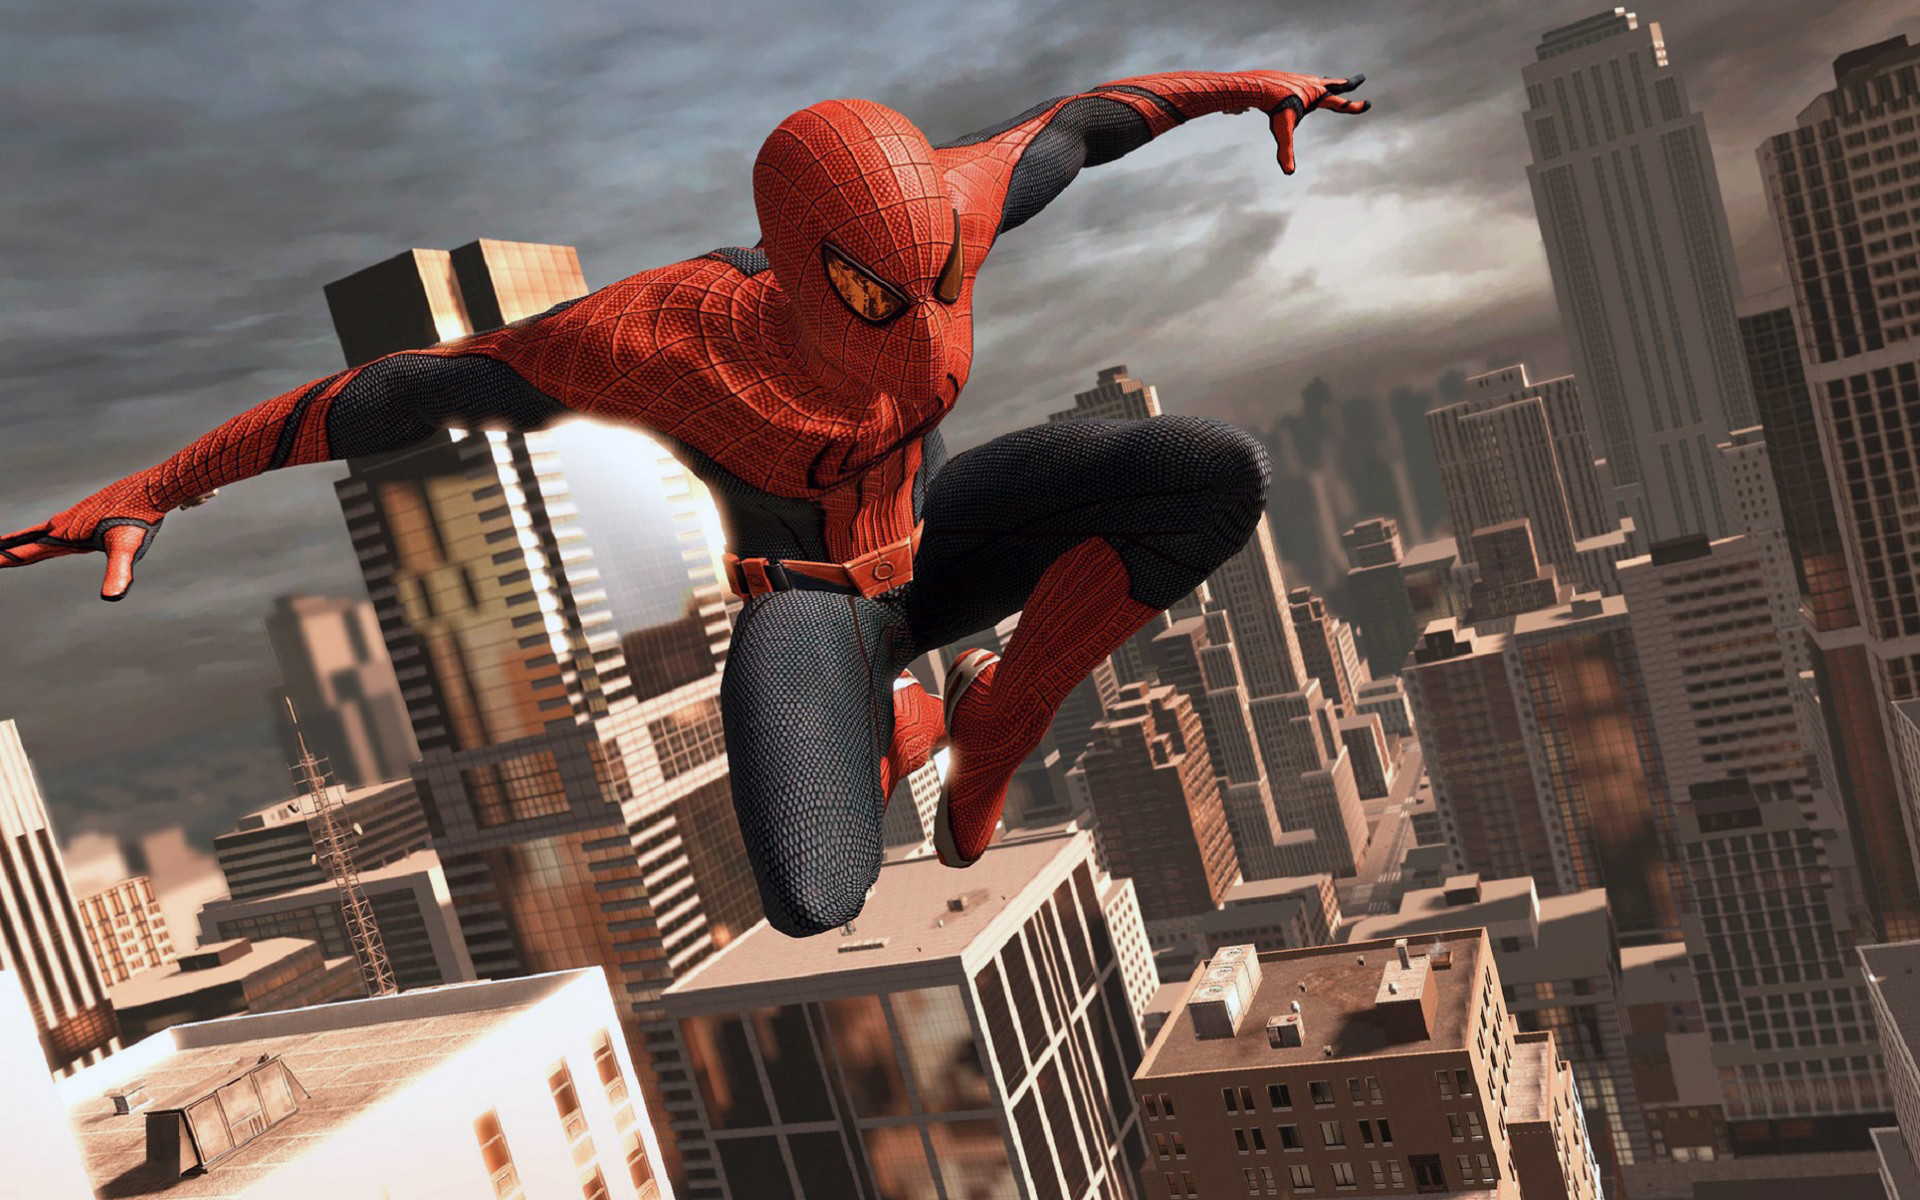 1920x1200 Spider Man Web Shooting Background Wallpaper The Amazing Spider Man Game 3D  Wallpapers